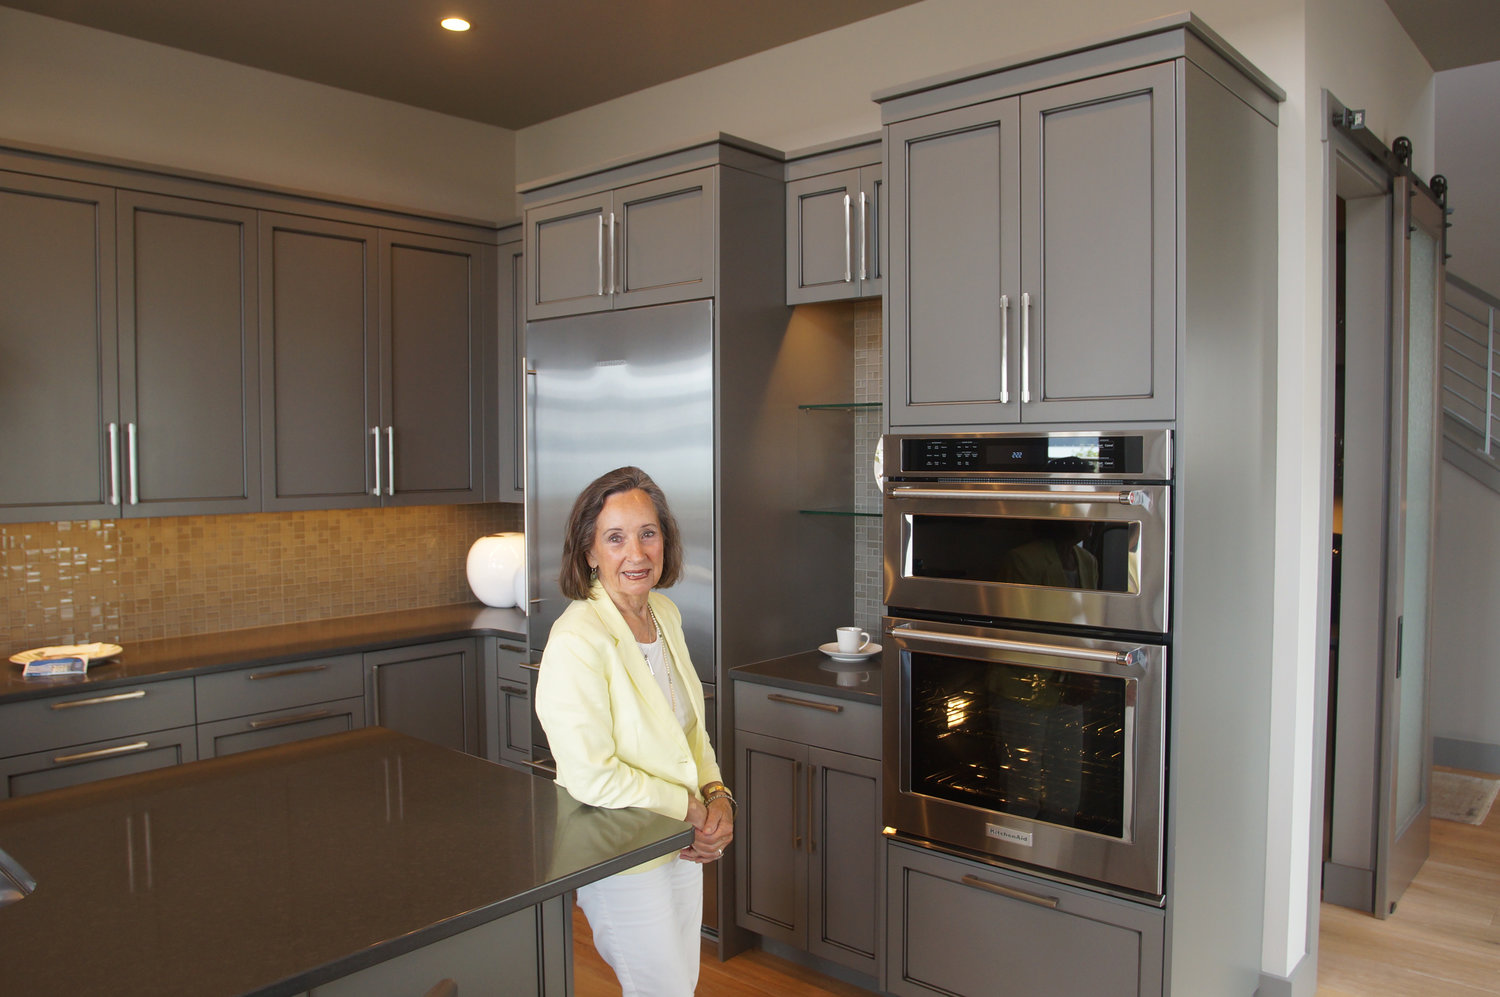 Markie Nelson stands in a kitchen that she designed in one of the model homes at Semiahmoo Shore.